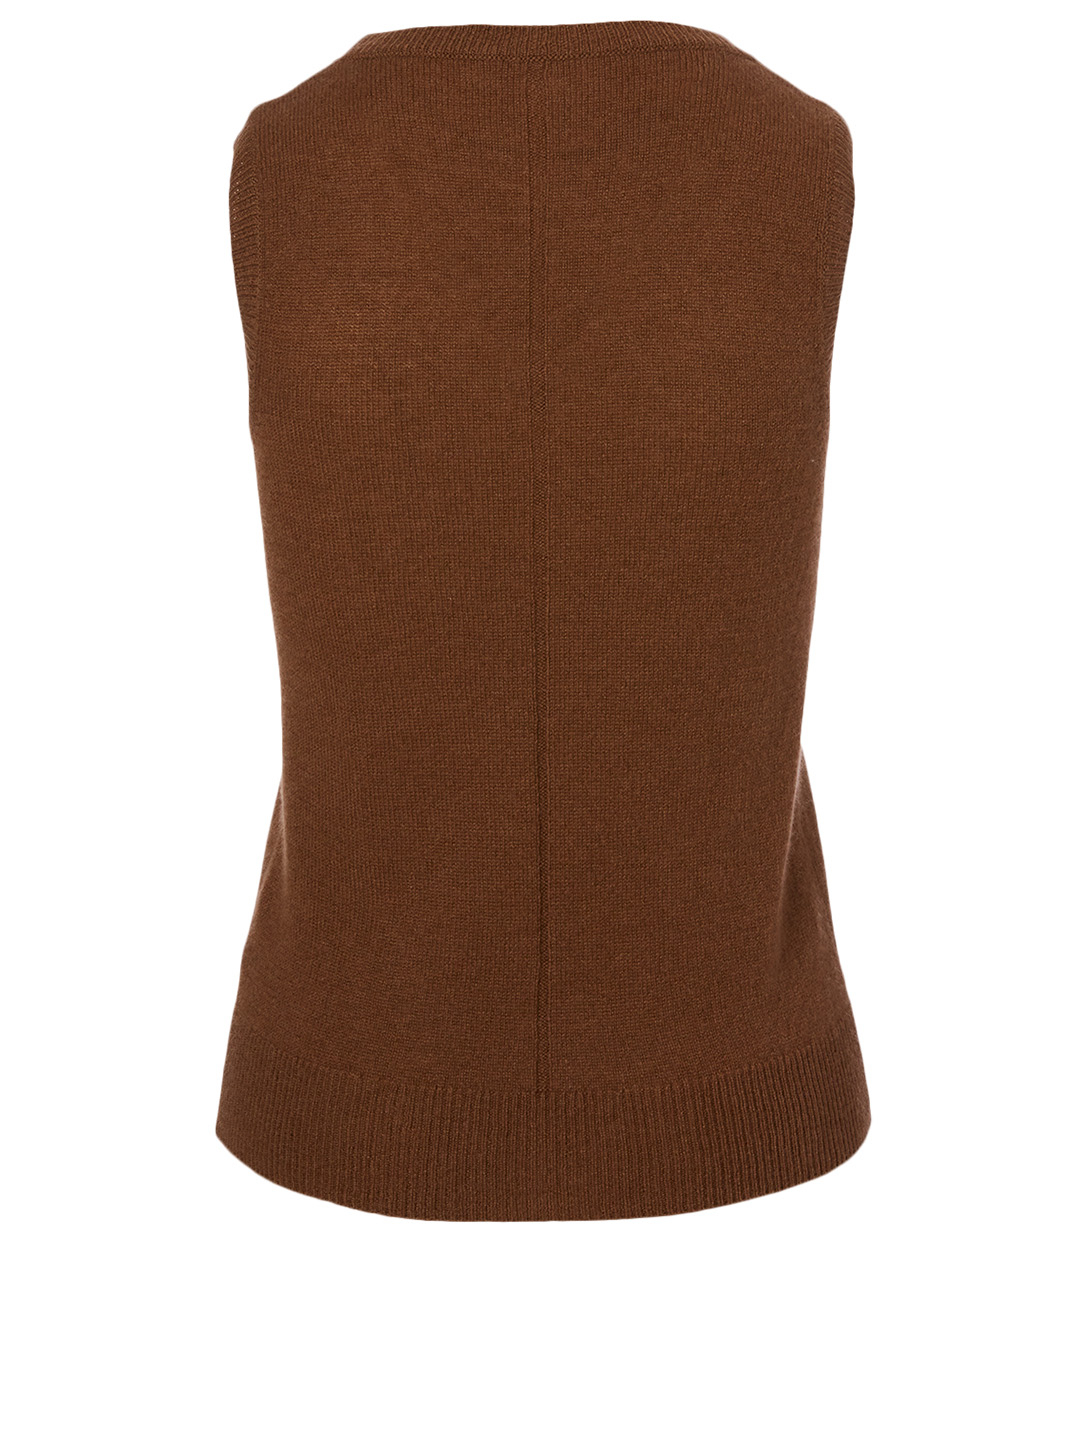 THE ROW Amalia Cashmere Sleeveless Top Women's Beige